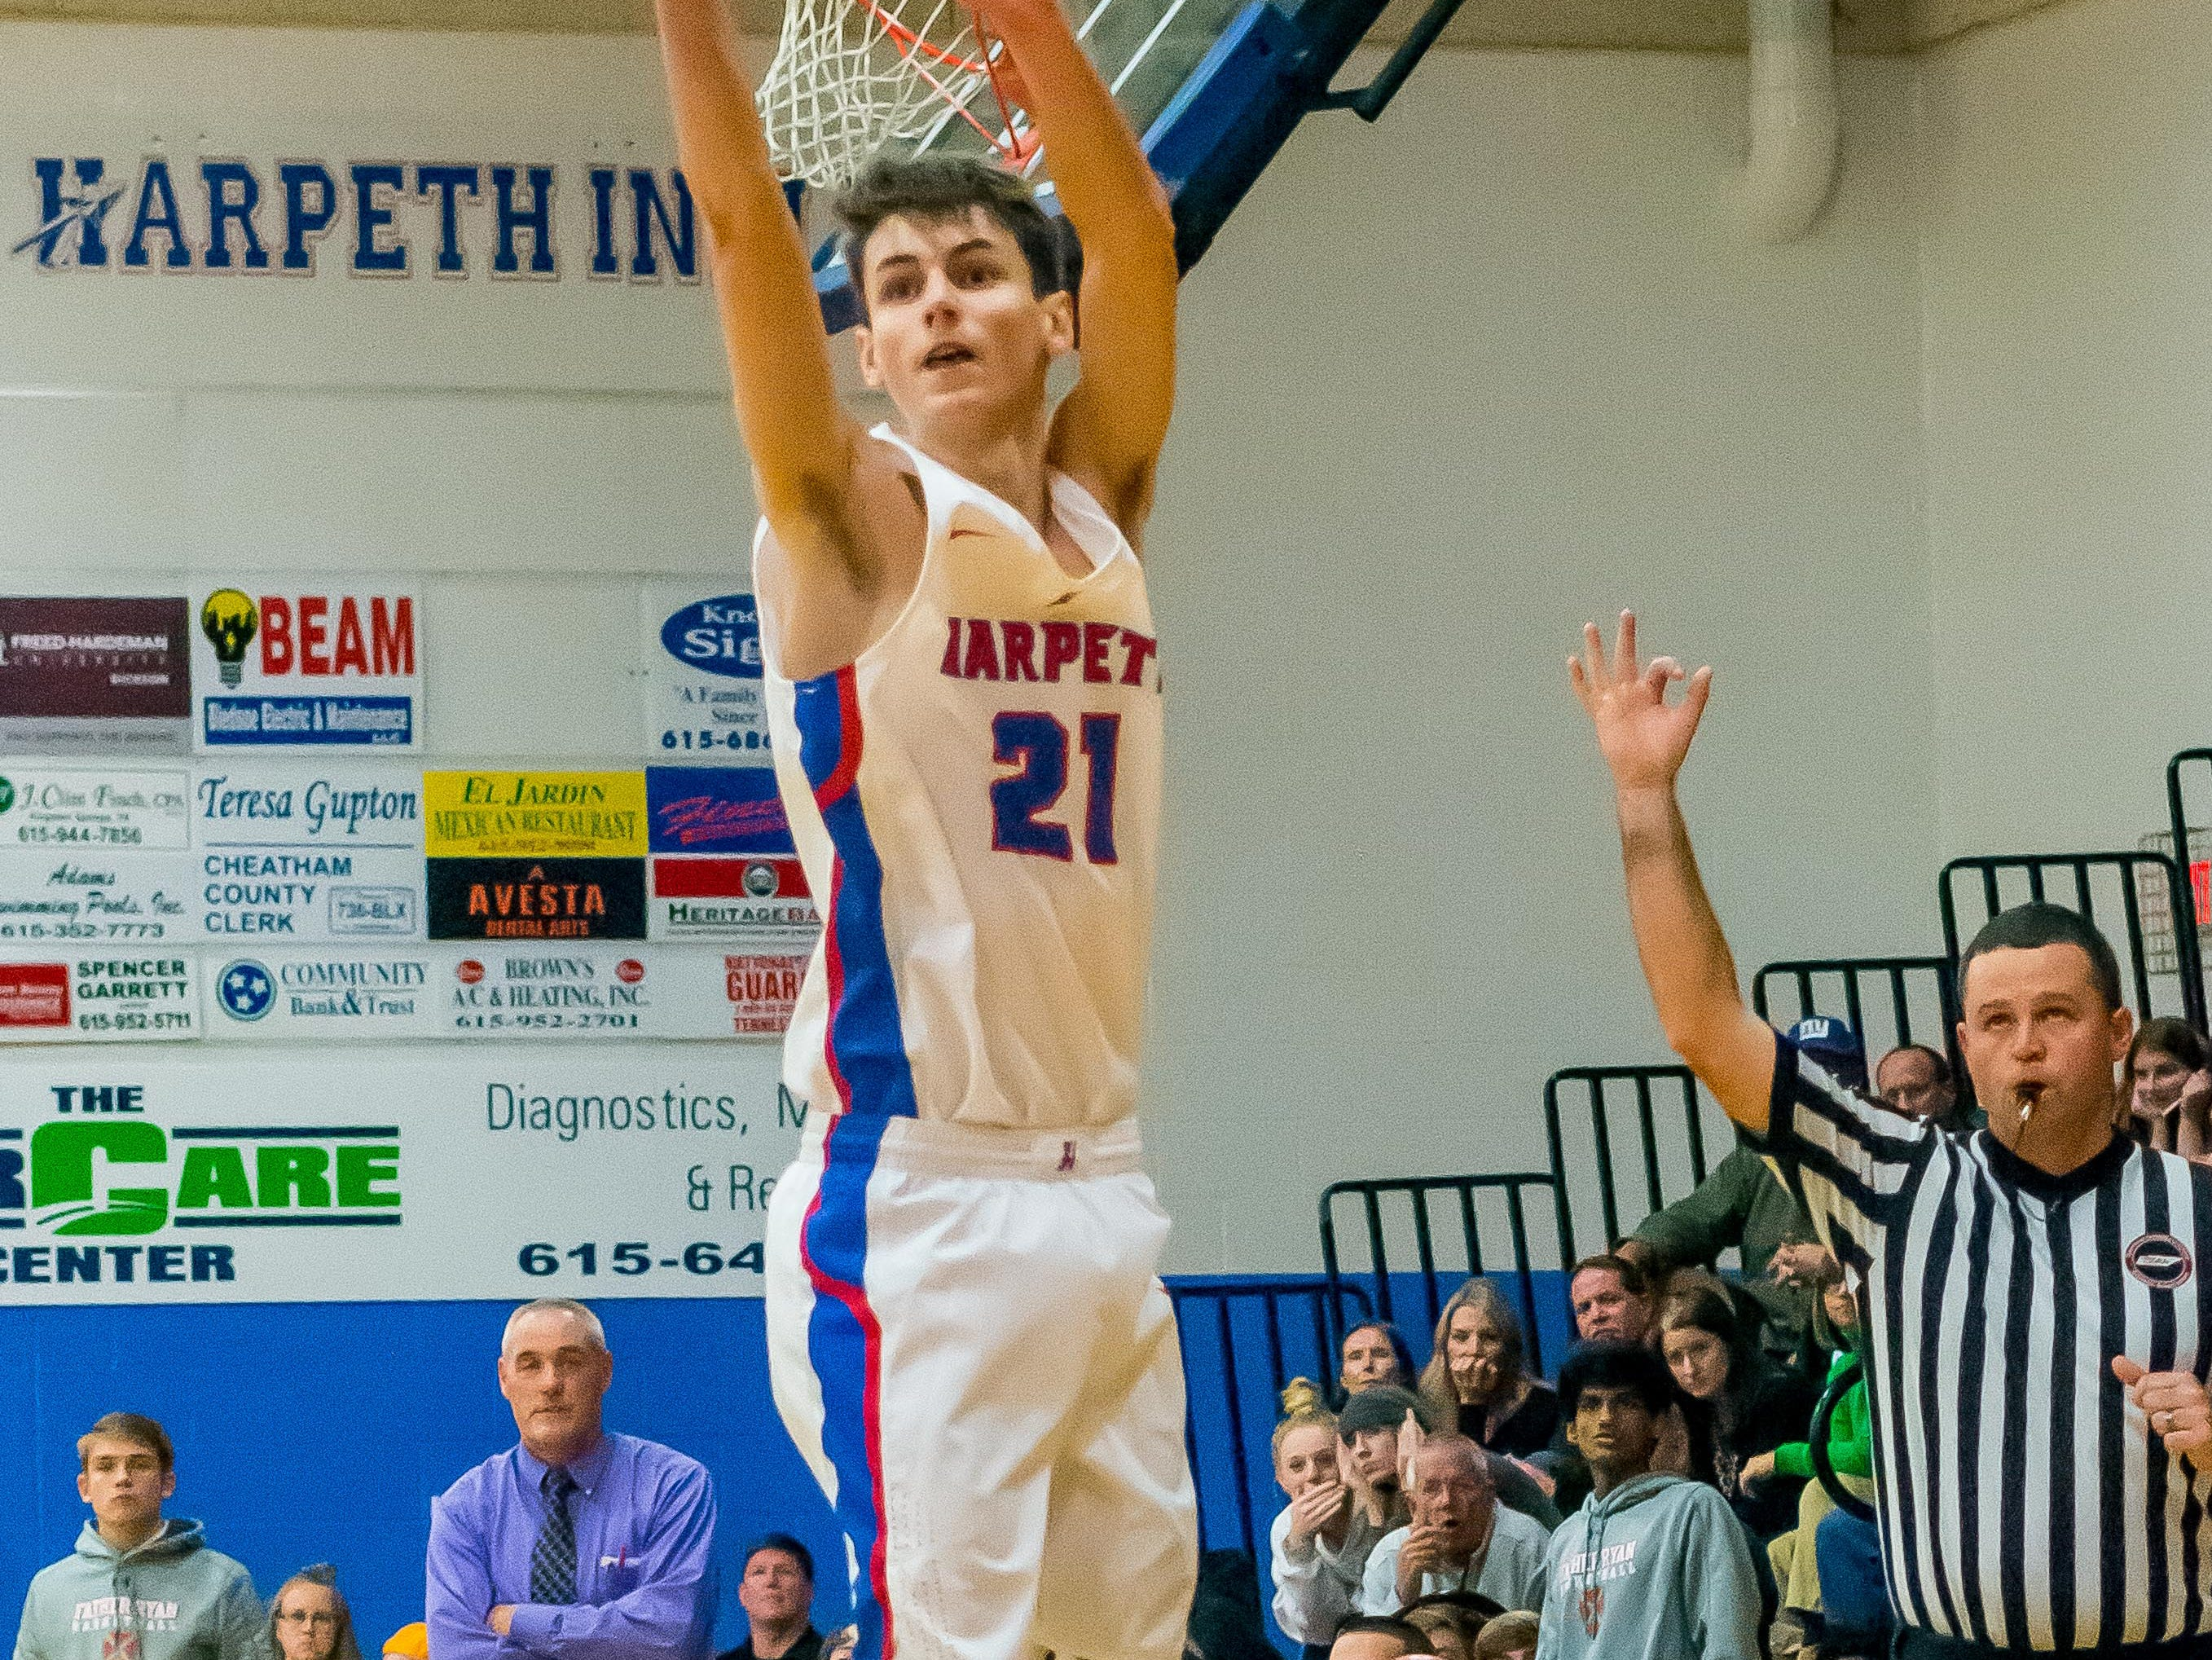 Harpeth senior Carter Hutchinson had not only the buzzer beater 3-pointer to put the game in overtime, but also hit the game-winning three to beat Father Ryan 55-50.